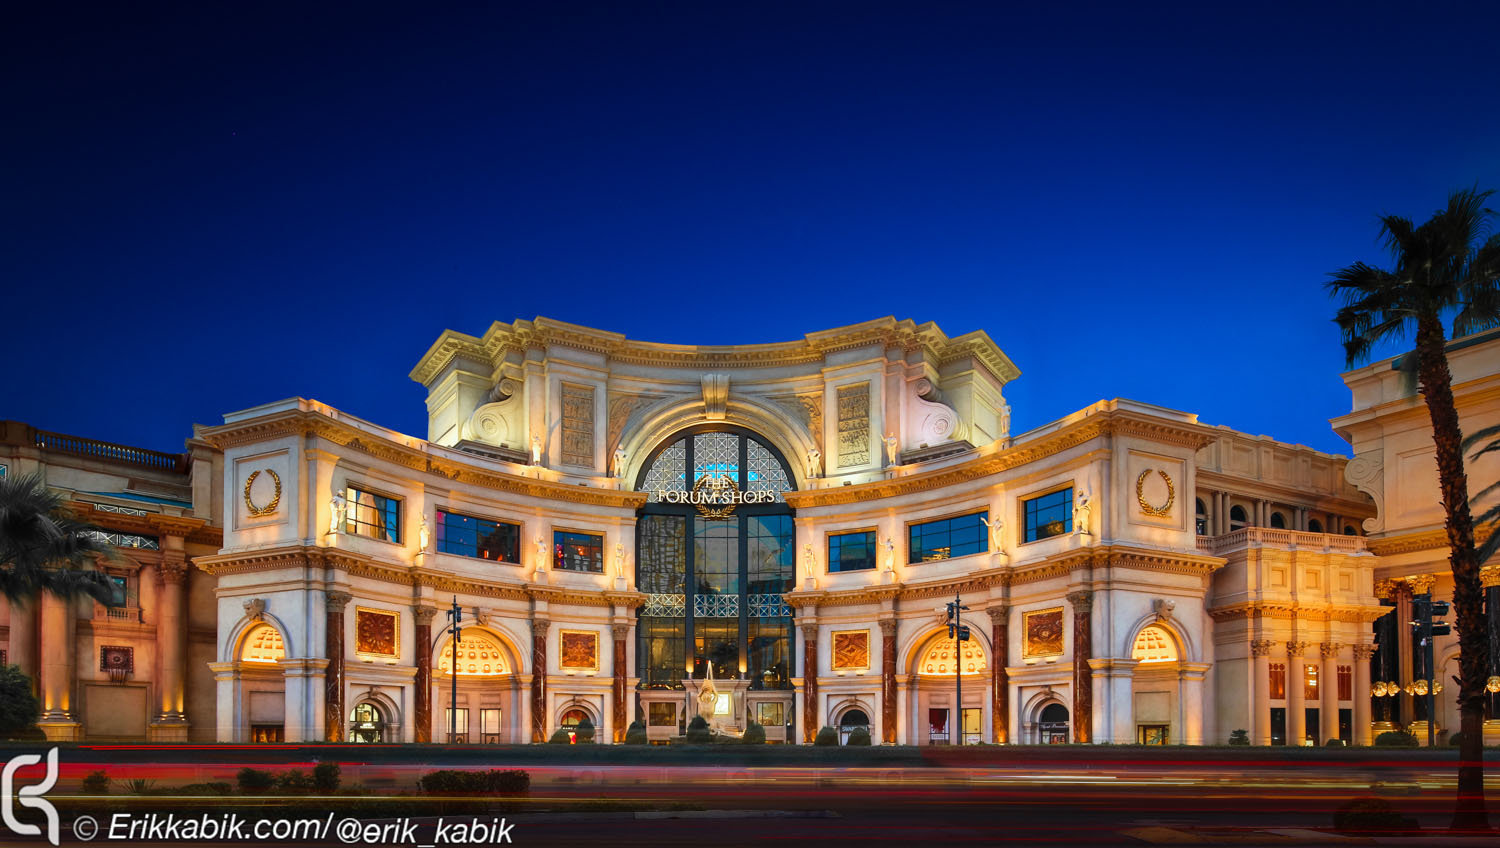 forum_shops_front_strip_-7_and_3_comp-4.jpg